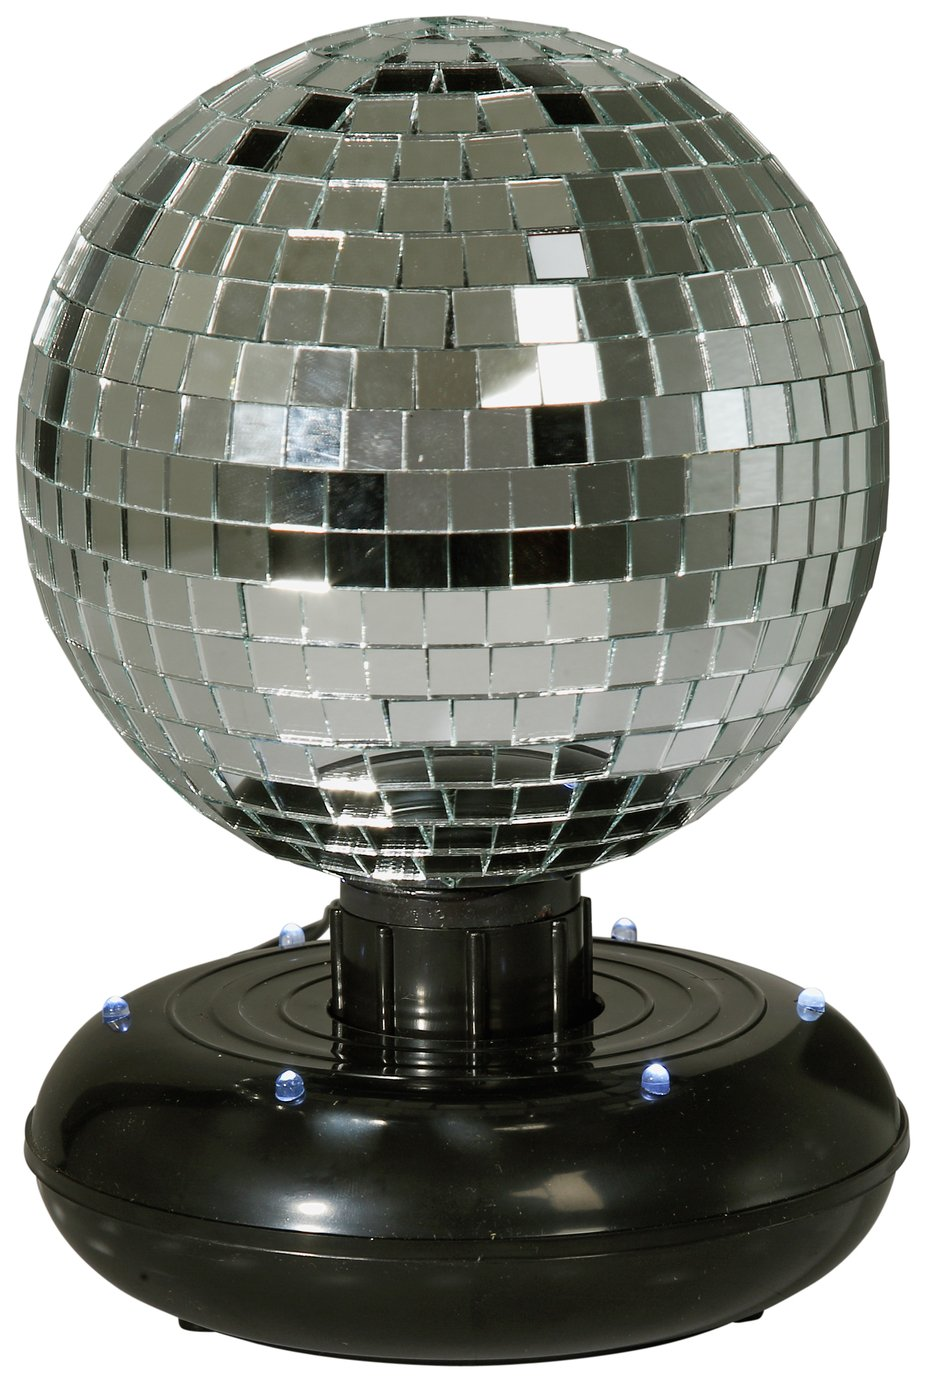 Image of Cheetah - 6 Inch Free Standing Rotating Mirror Ball Kit